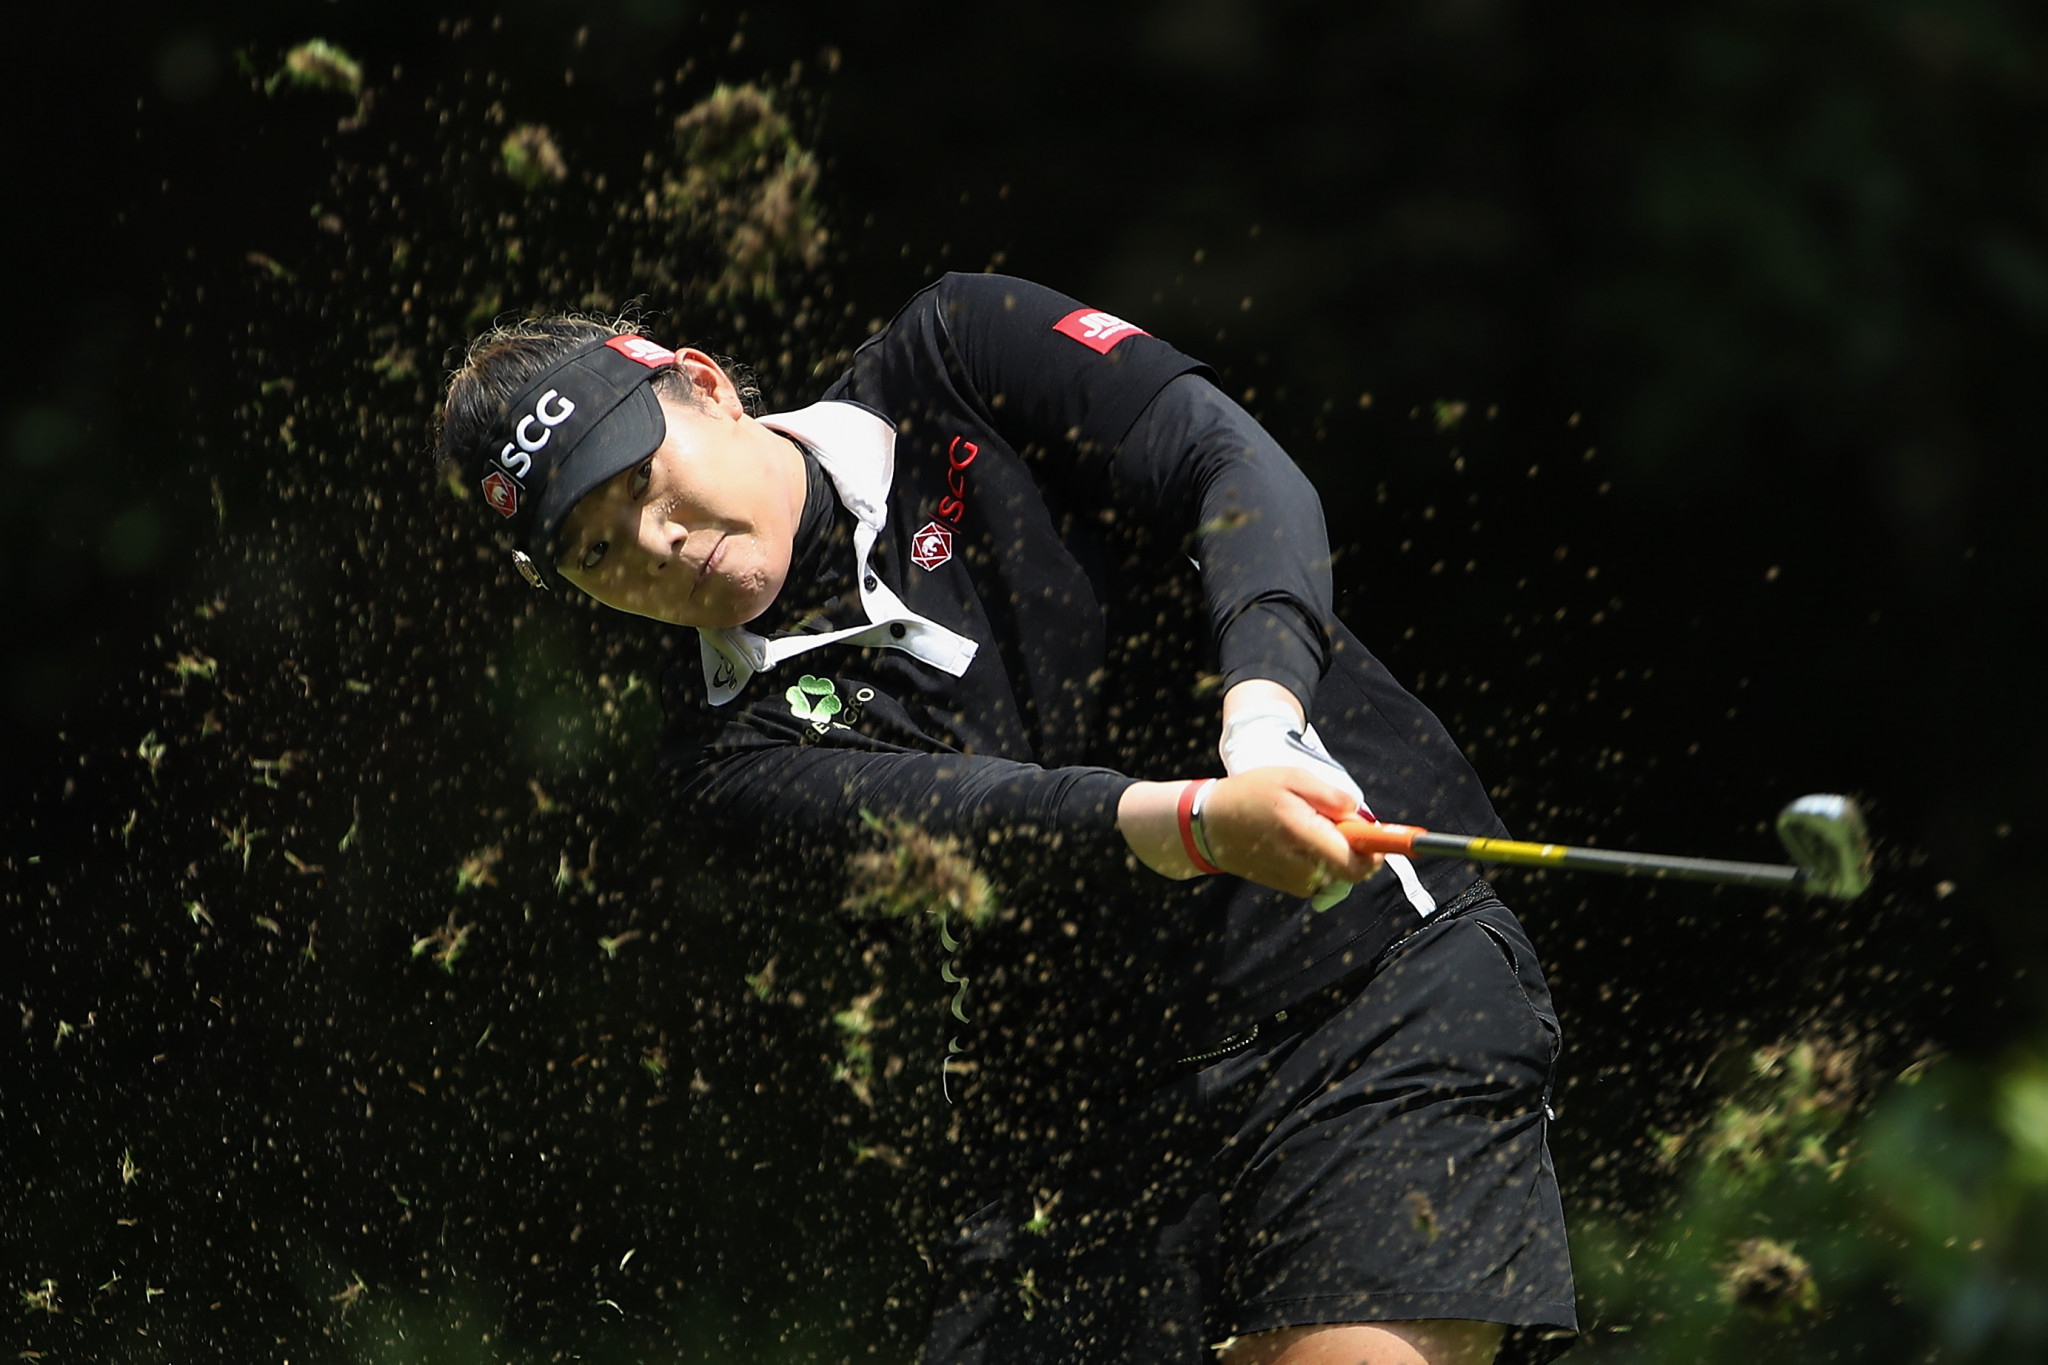 Ariya Jutanugarn emerged triumphant at the US Women's Open despite seeing a seven-shot lead disapper ©Getty Images